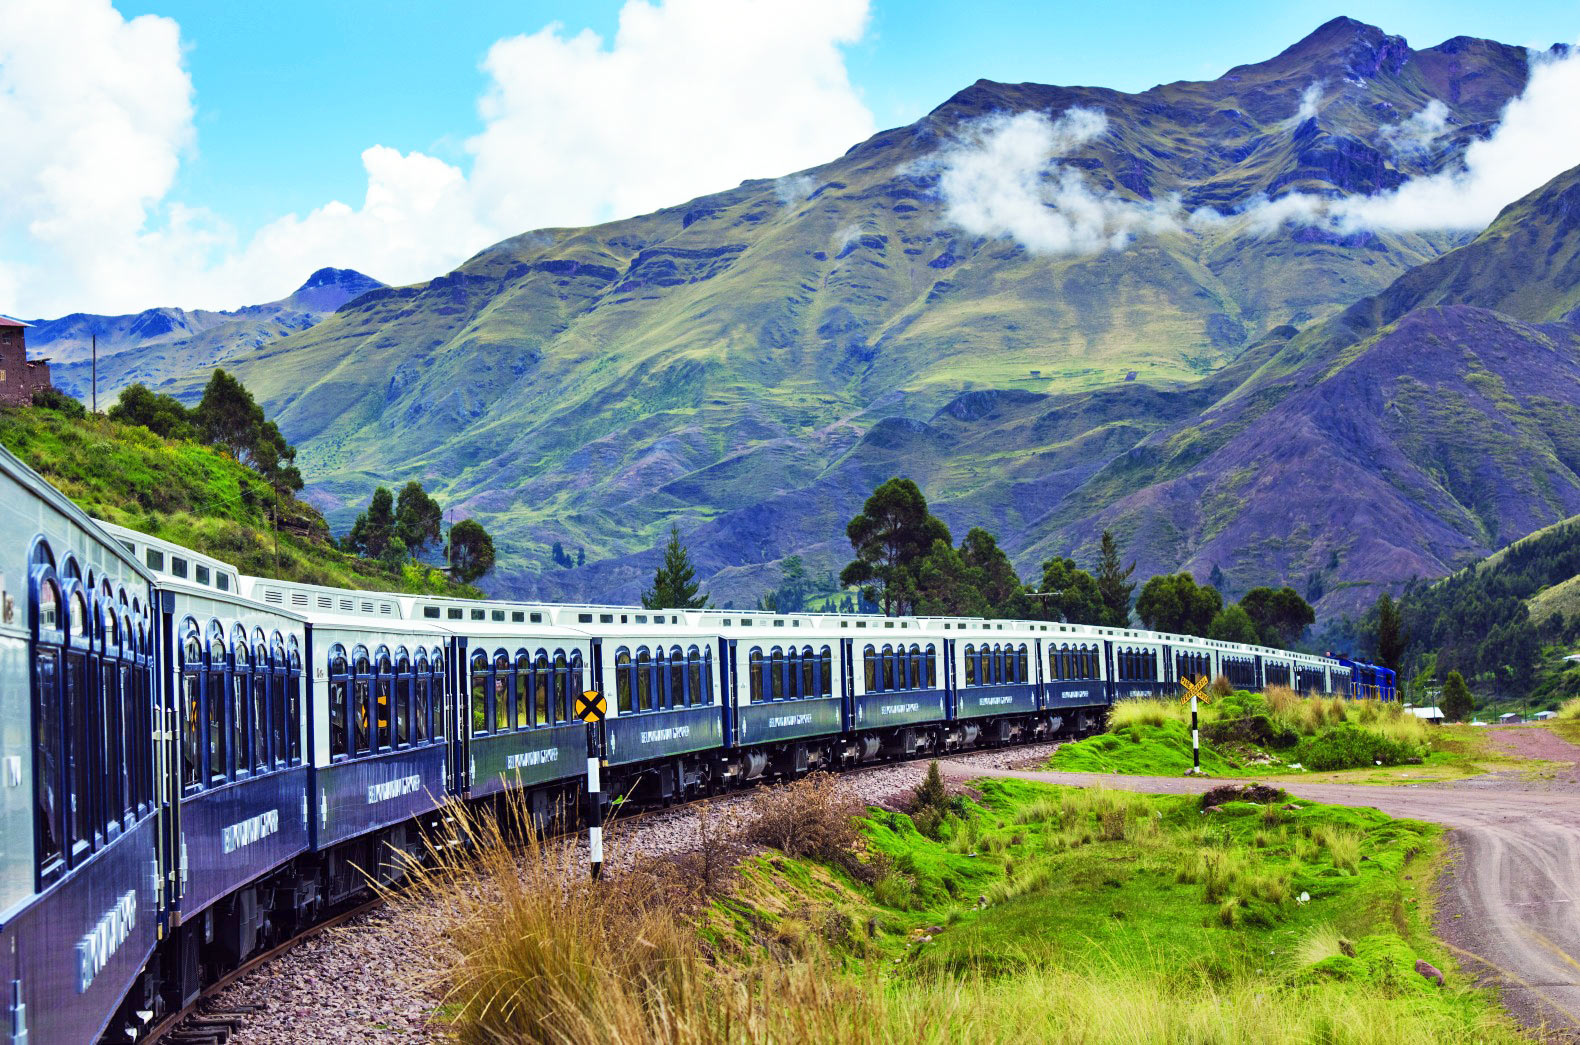 South America's first luxury sleeper train is a traveler's dream come true